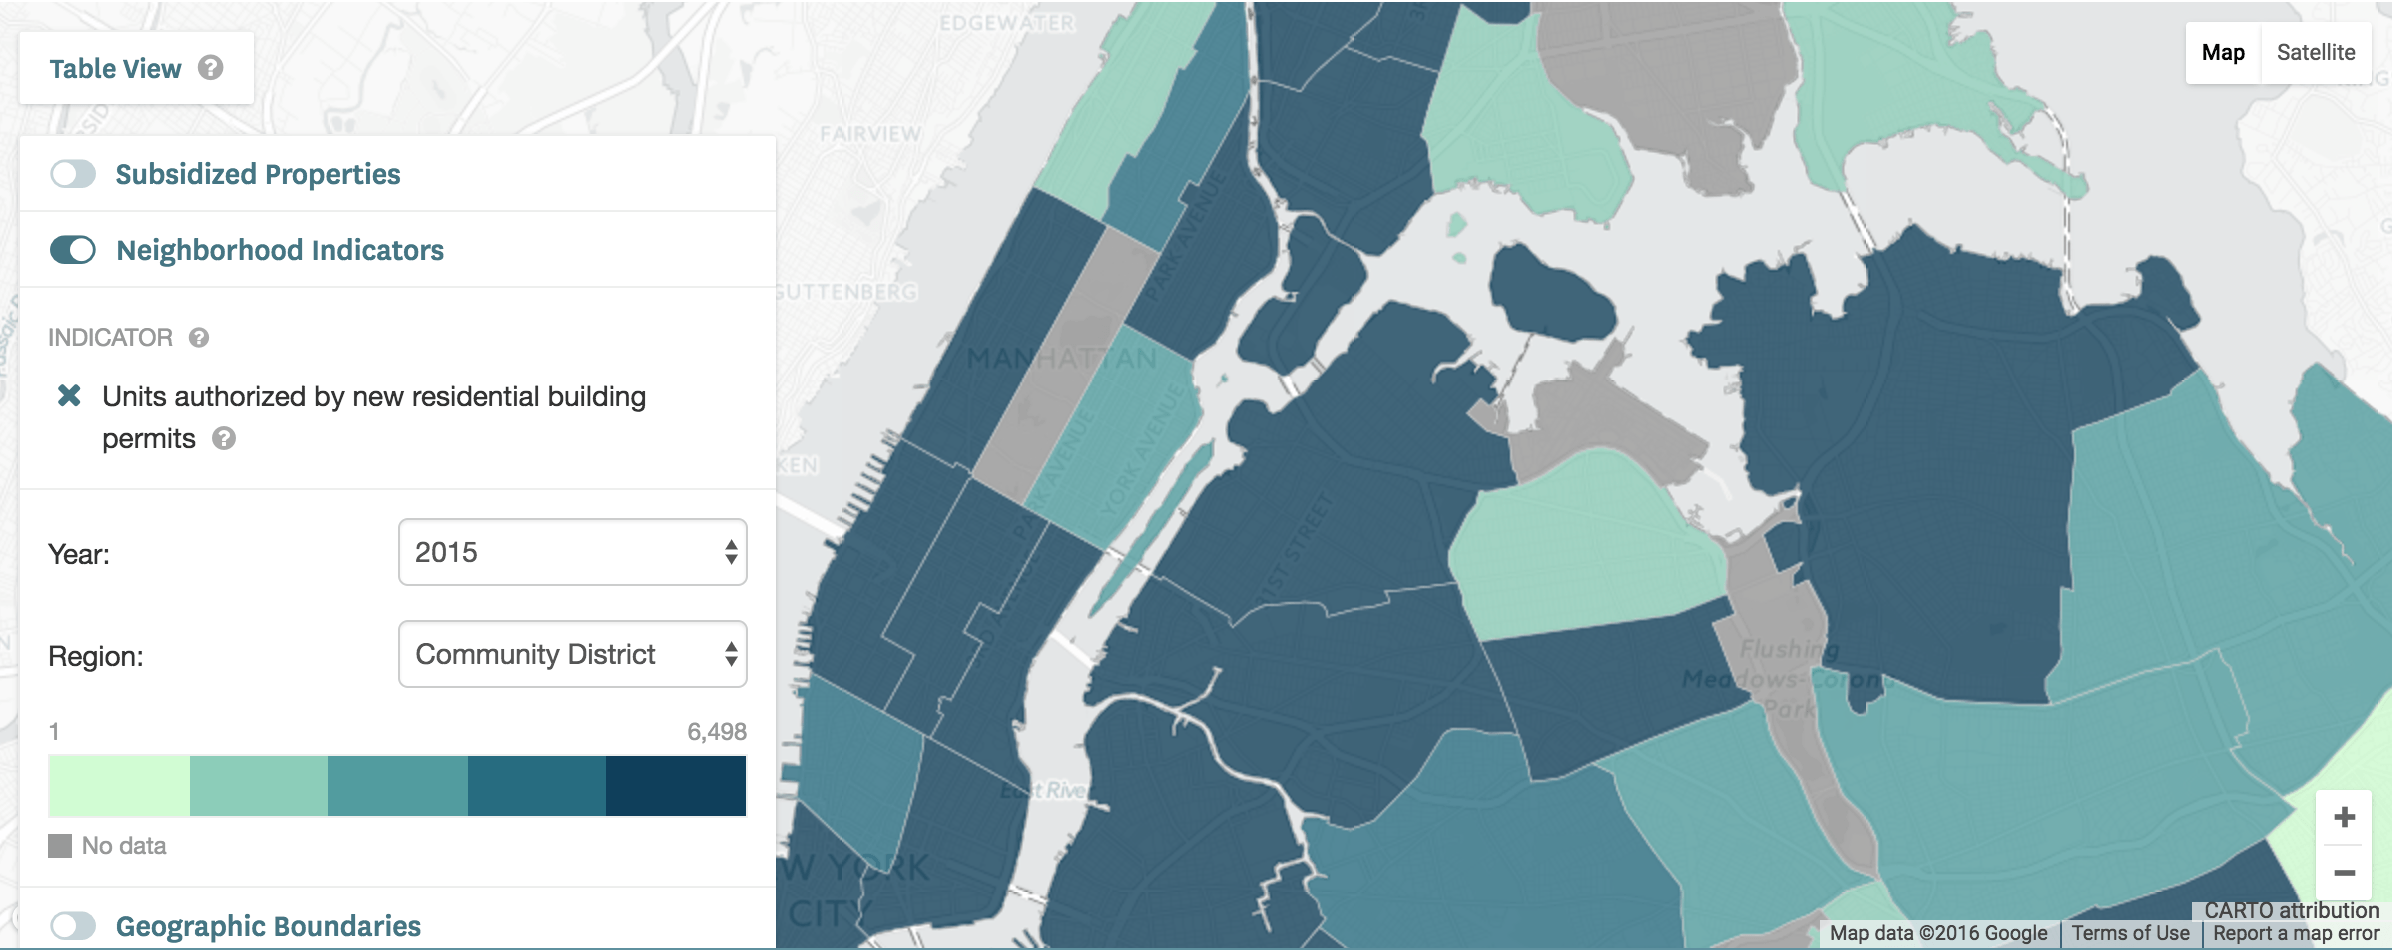 Track Affordable Housing Across NYC With This New Map And Data - Nyc city map portal